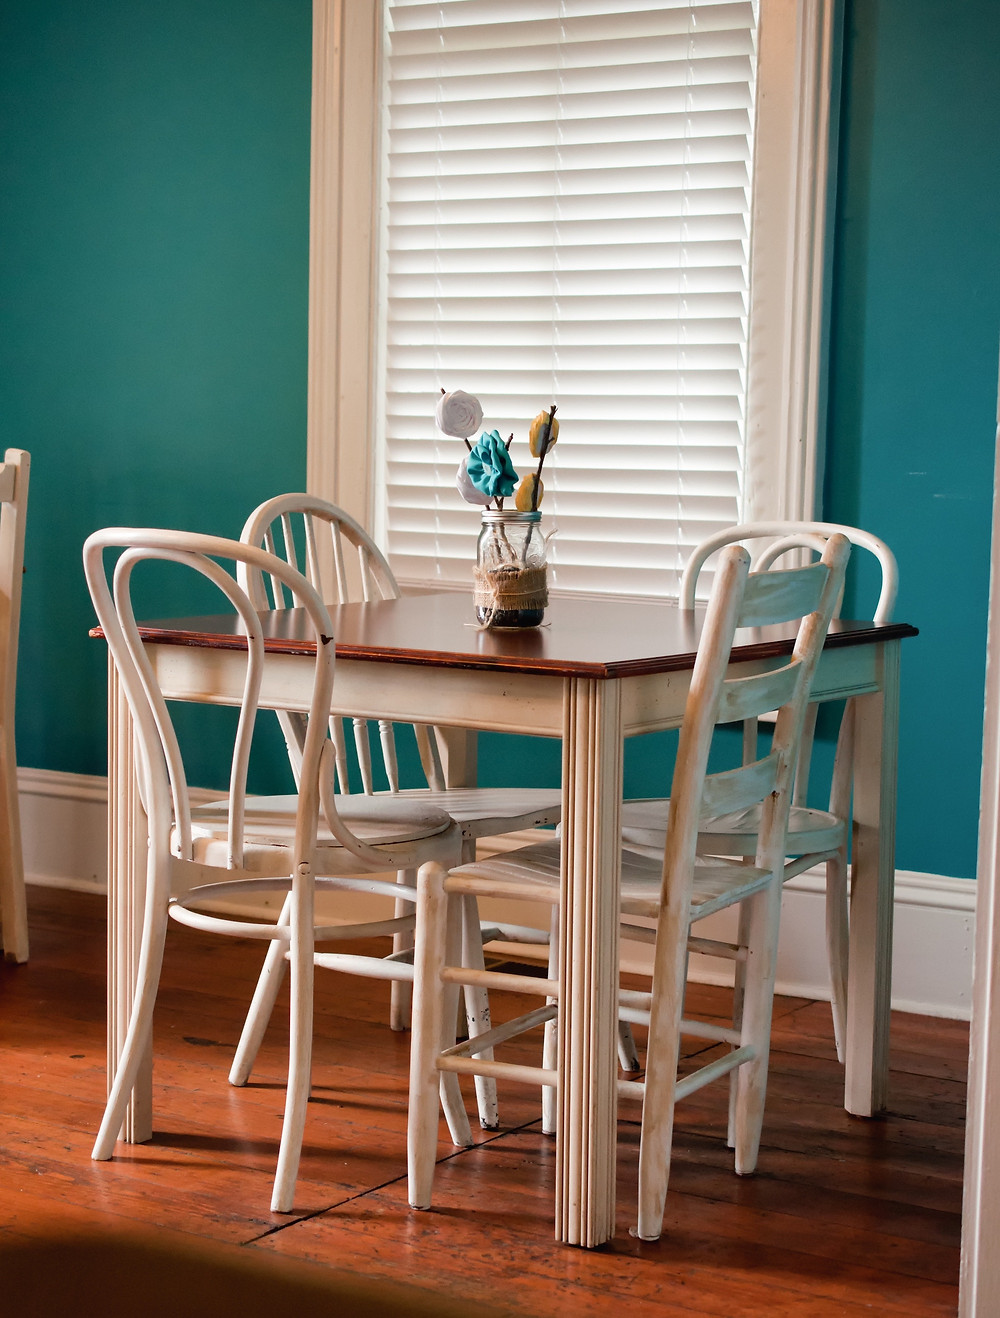 A kitchen with a small table and chairs, and the blinds closed because the family is on a trip